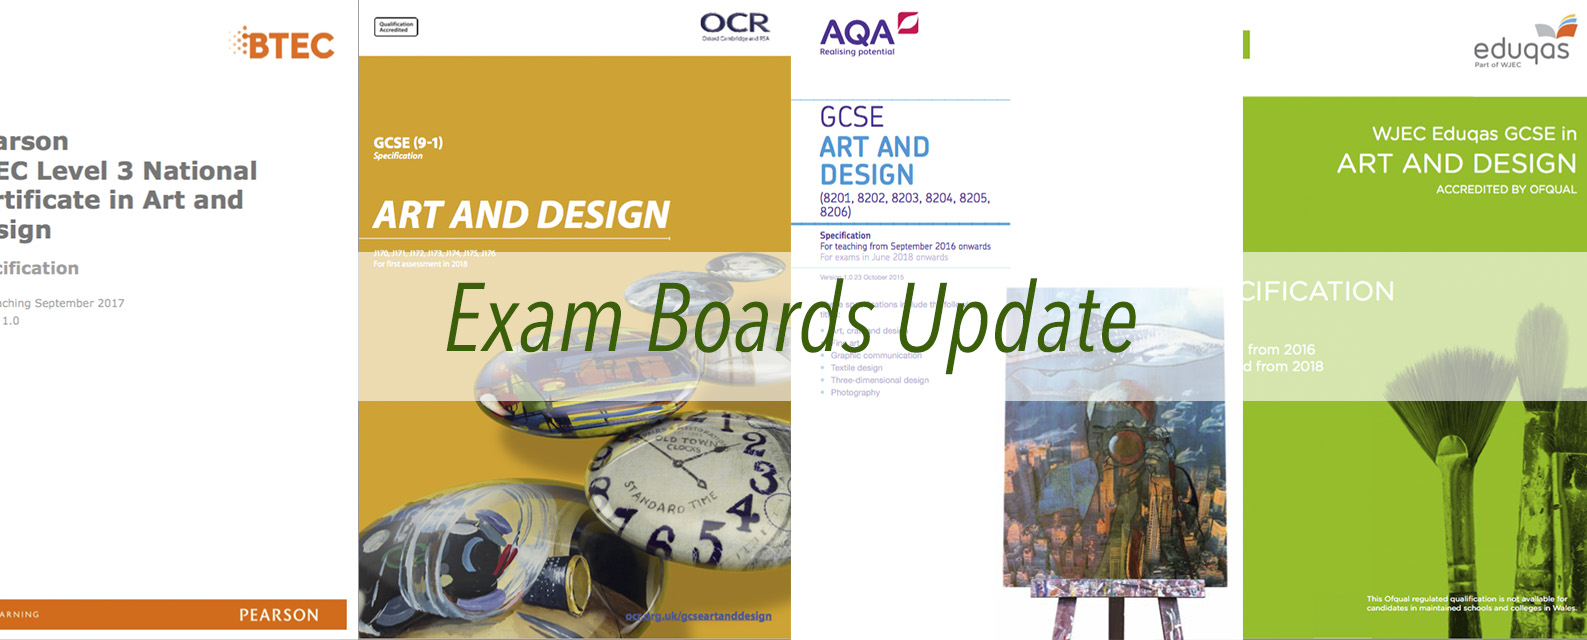 Exam boards Update Textiles